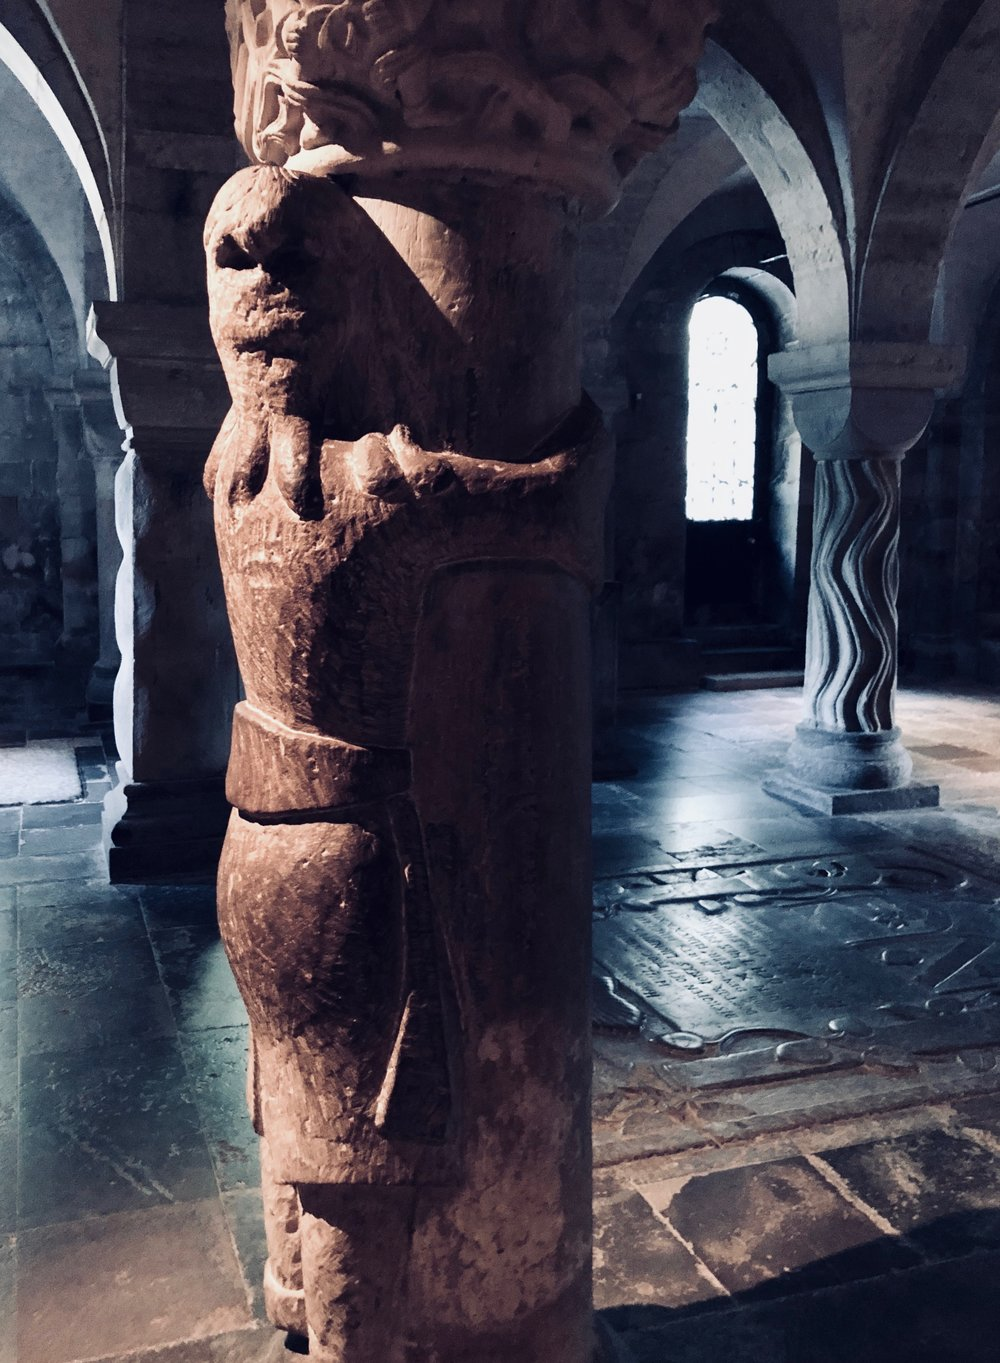 Finn, turned into stone, holding onto one of the stone columns in the crypt of Lund Cathedral.